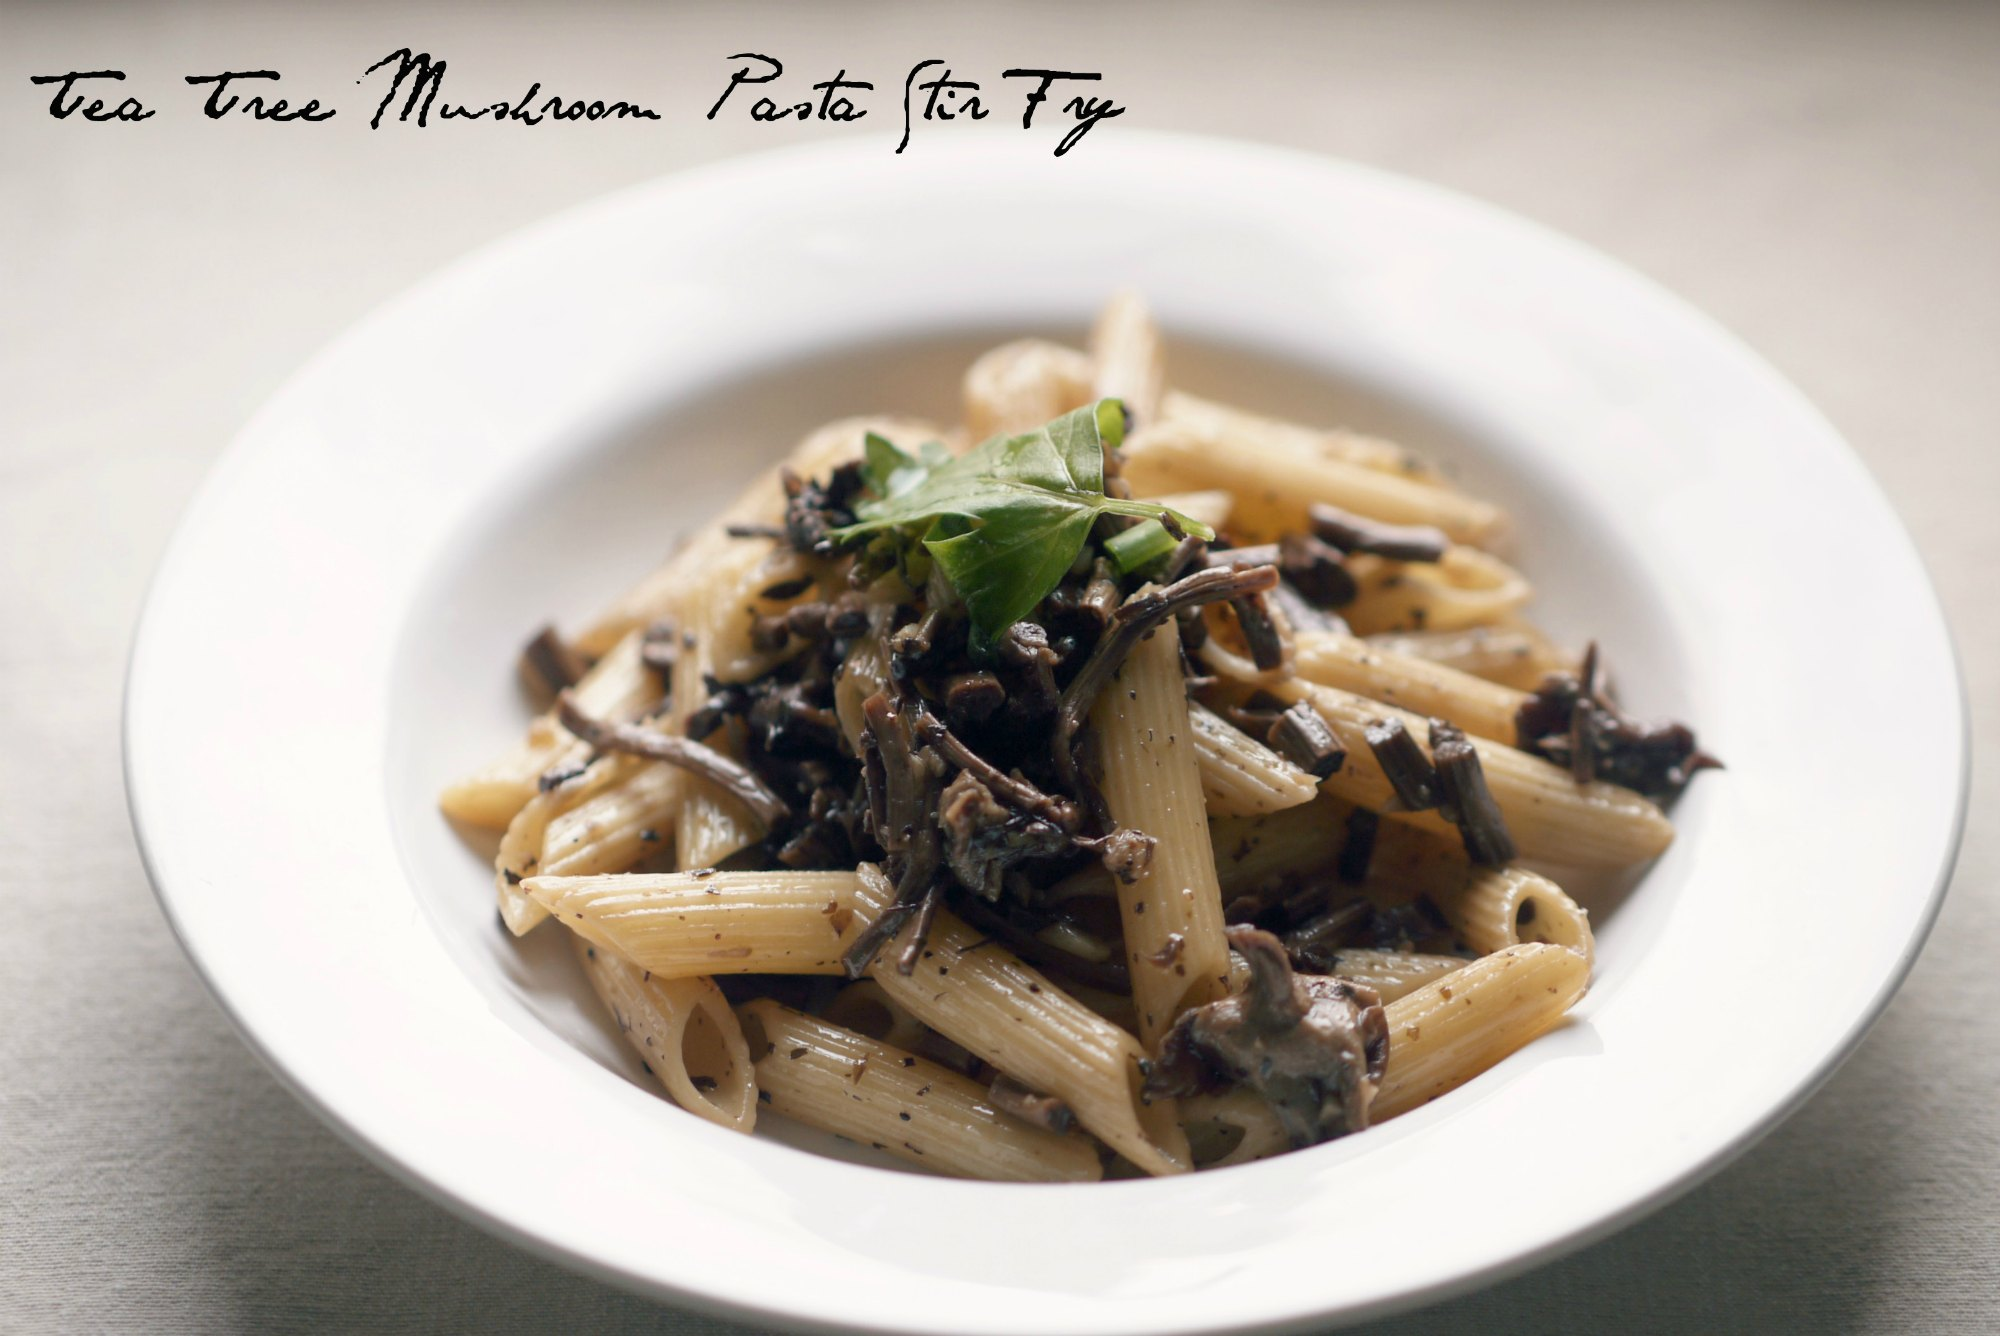 Tea Tree Mushrooms Pasta Stir Fry Mono And Co